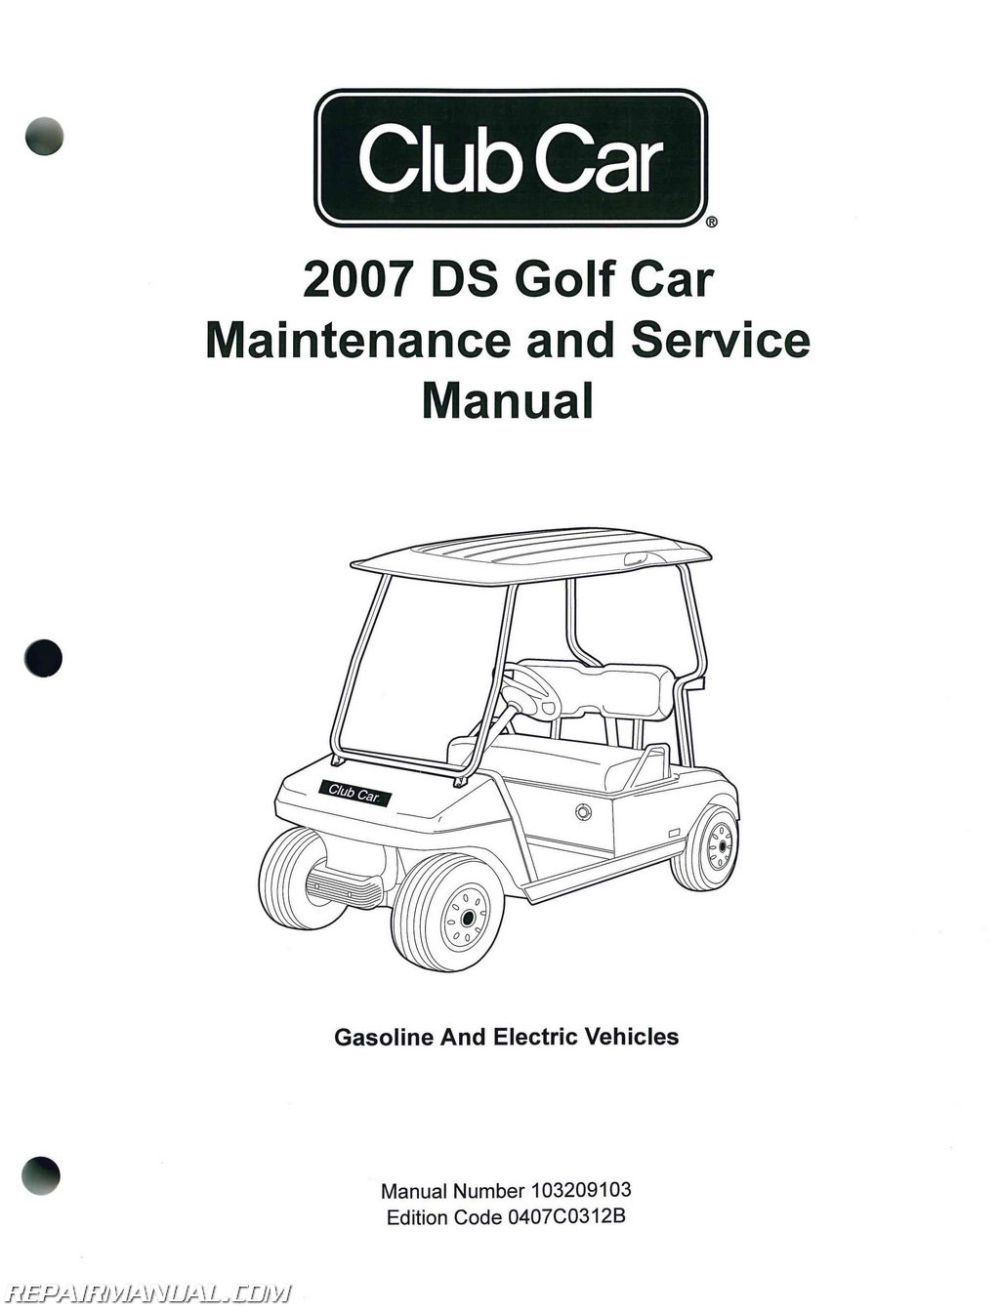 medium resolution of 2007 club car ds golf car gas and